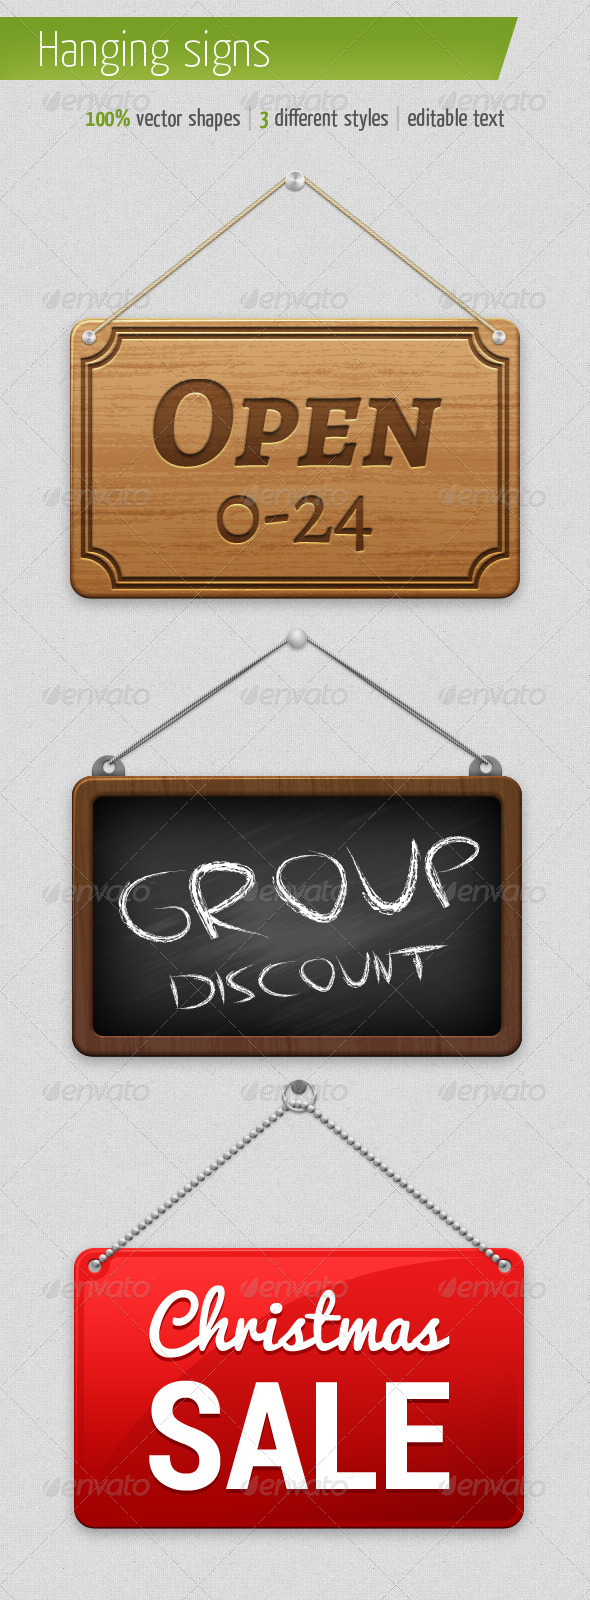 3 Different Hanging Signs - Illustrations Graphics